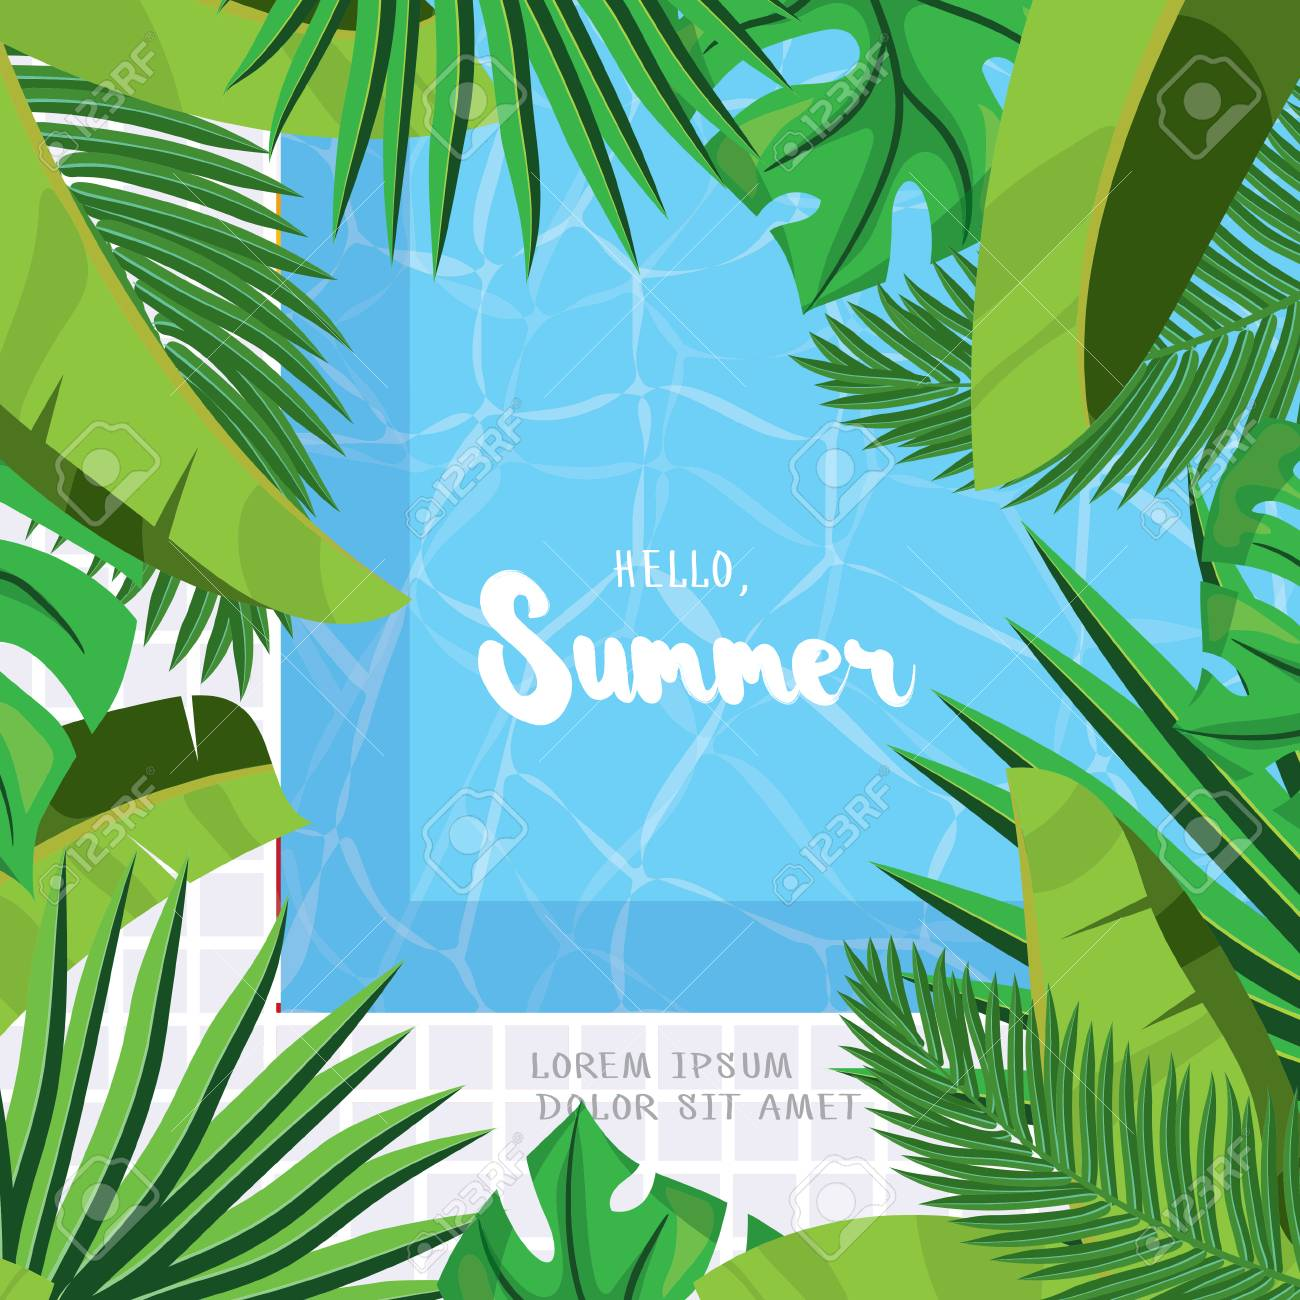 Hello, Summer. Holiday Greeting Card With Tropical Palm Leaves,swimming  Pool And Calligraphy